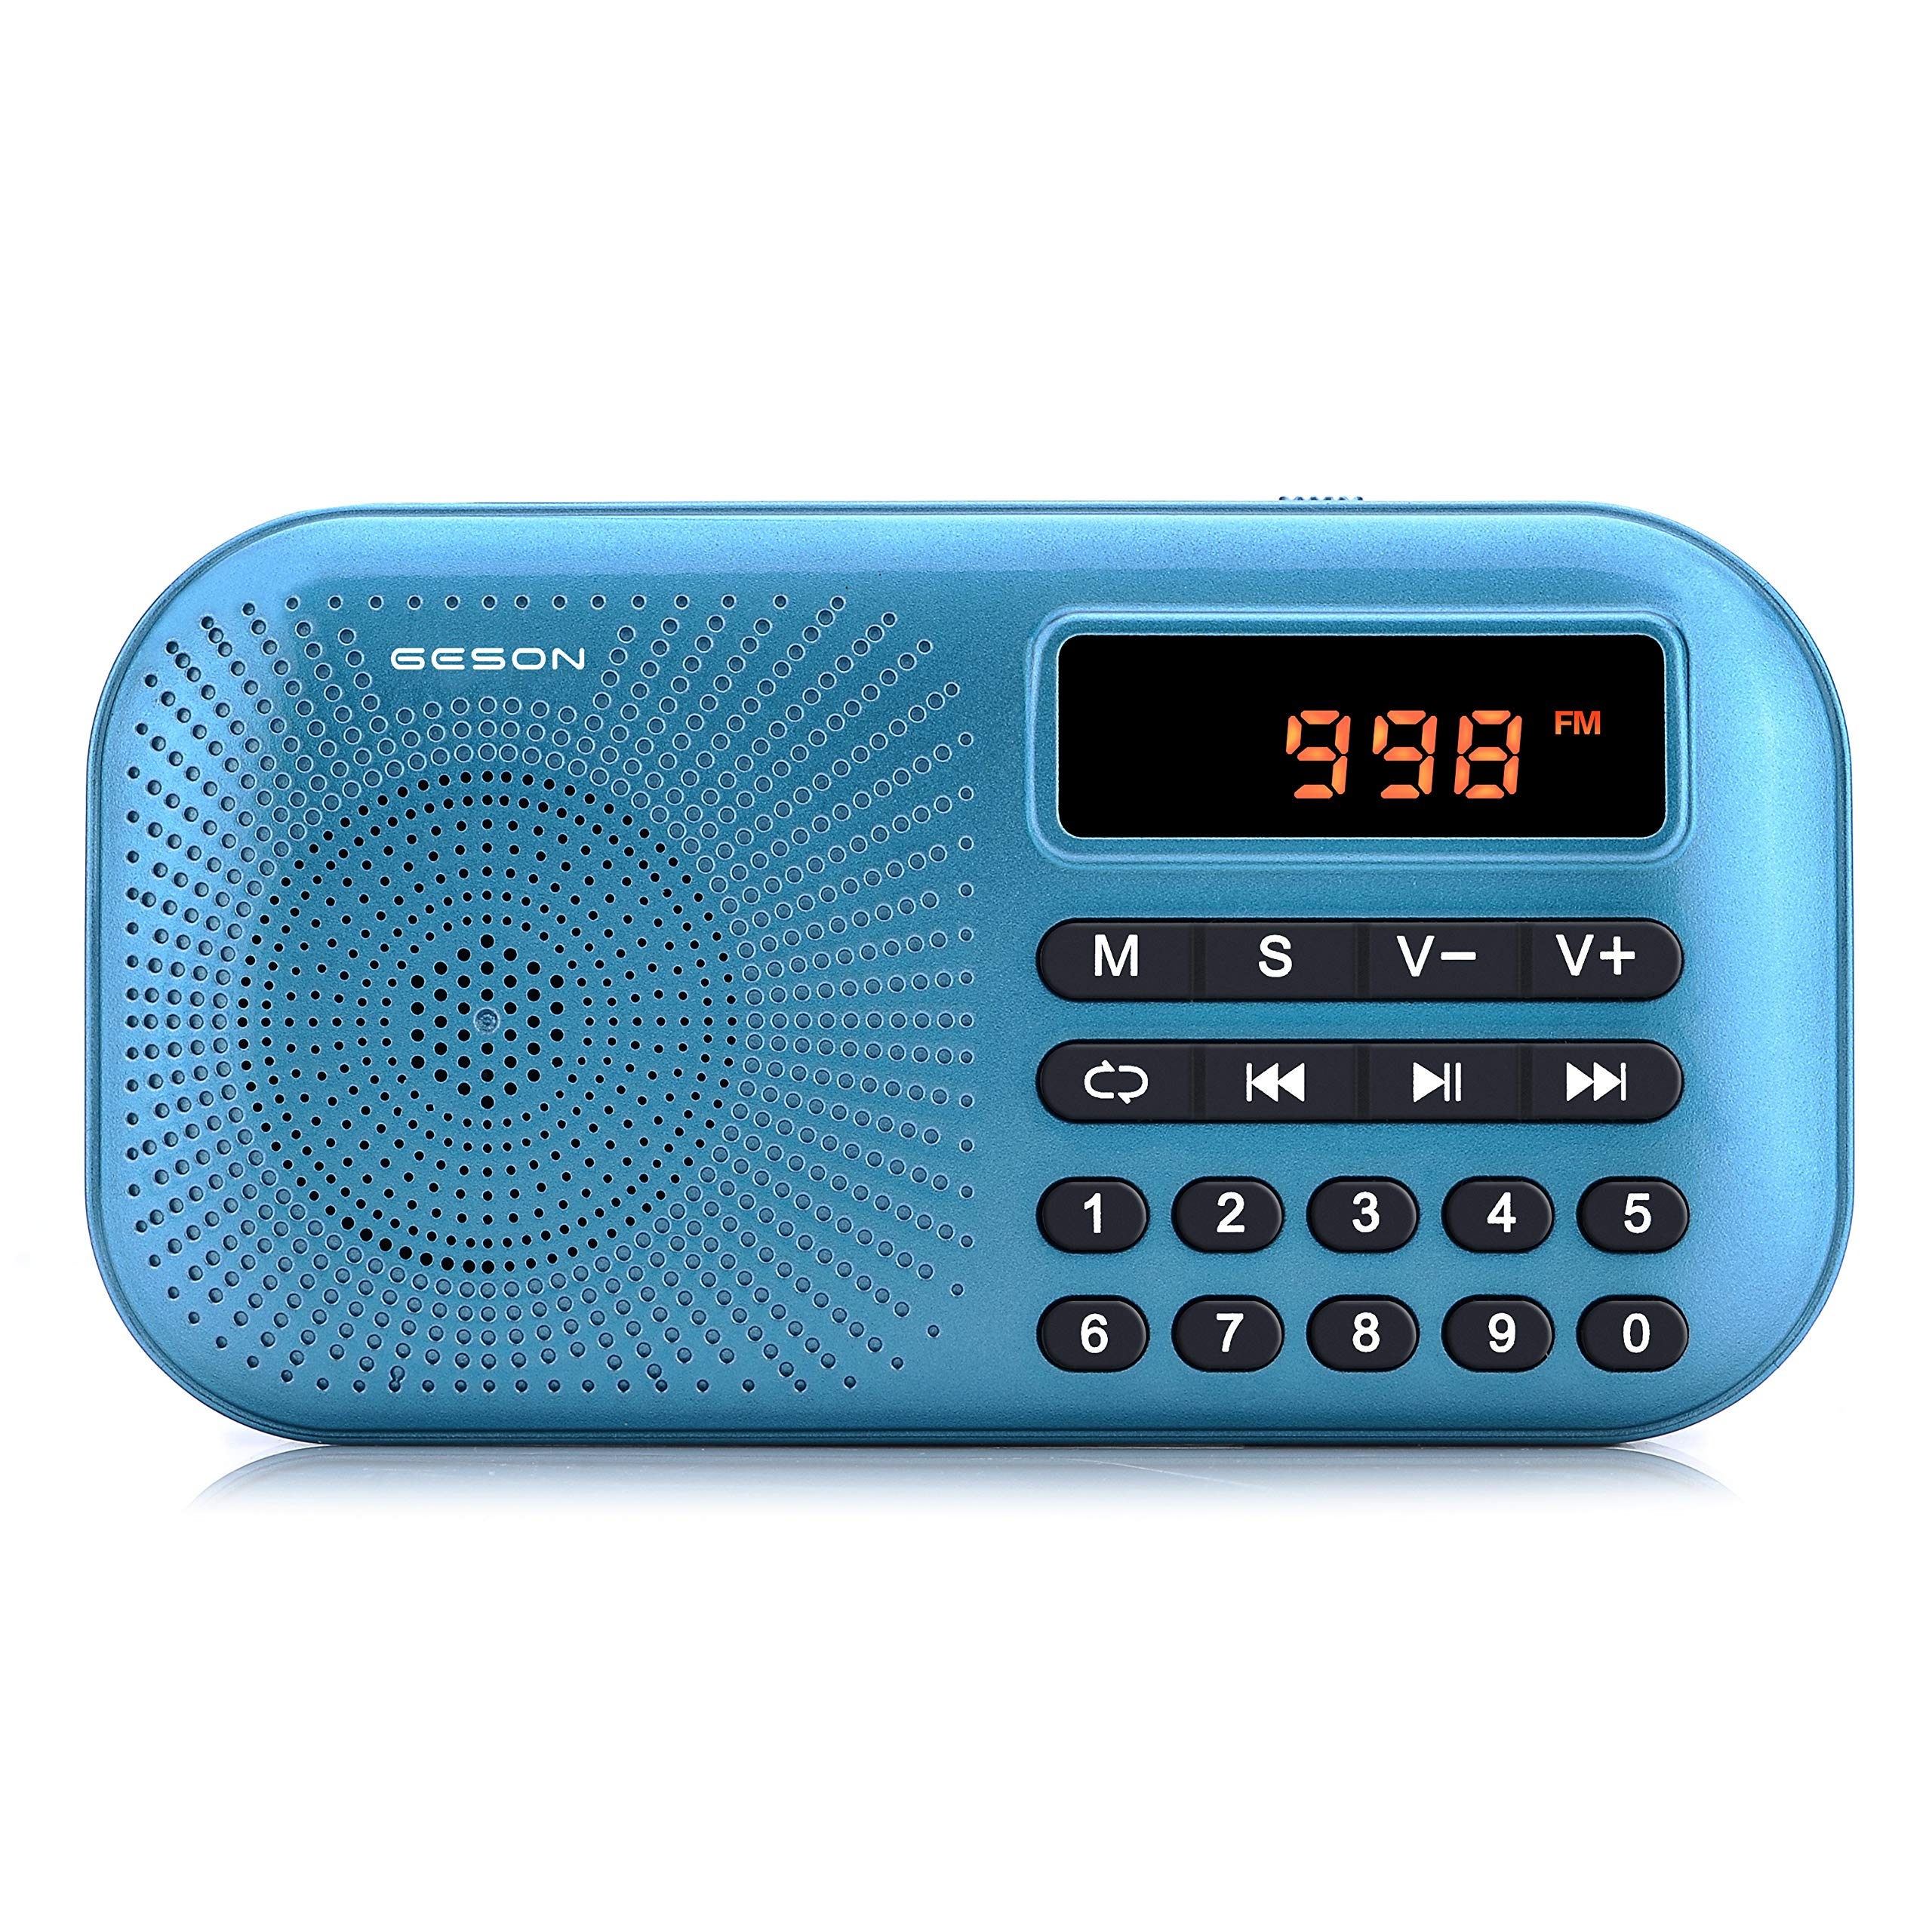 Portable AM FM Radio, Geson Mini Music Radio Player Support Micro SD Card/USB Disk with LED Screen Display (Blue) by Geson (Image #1)